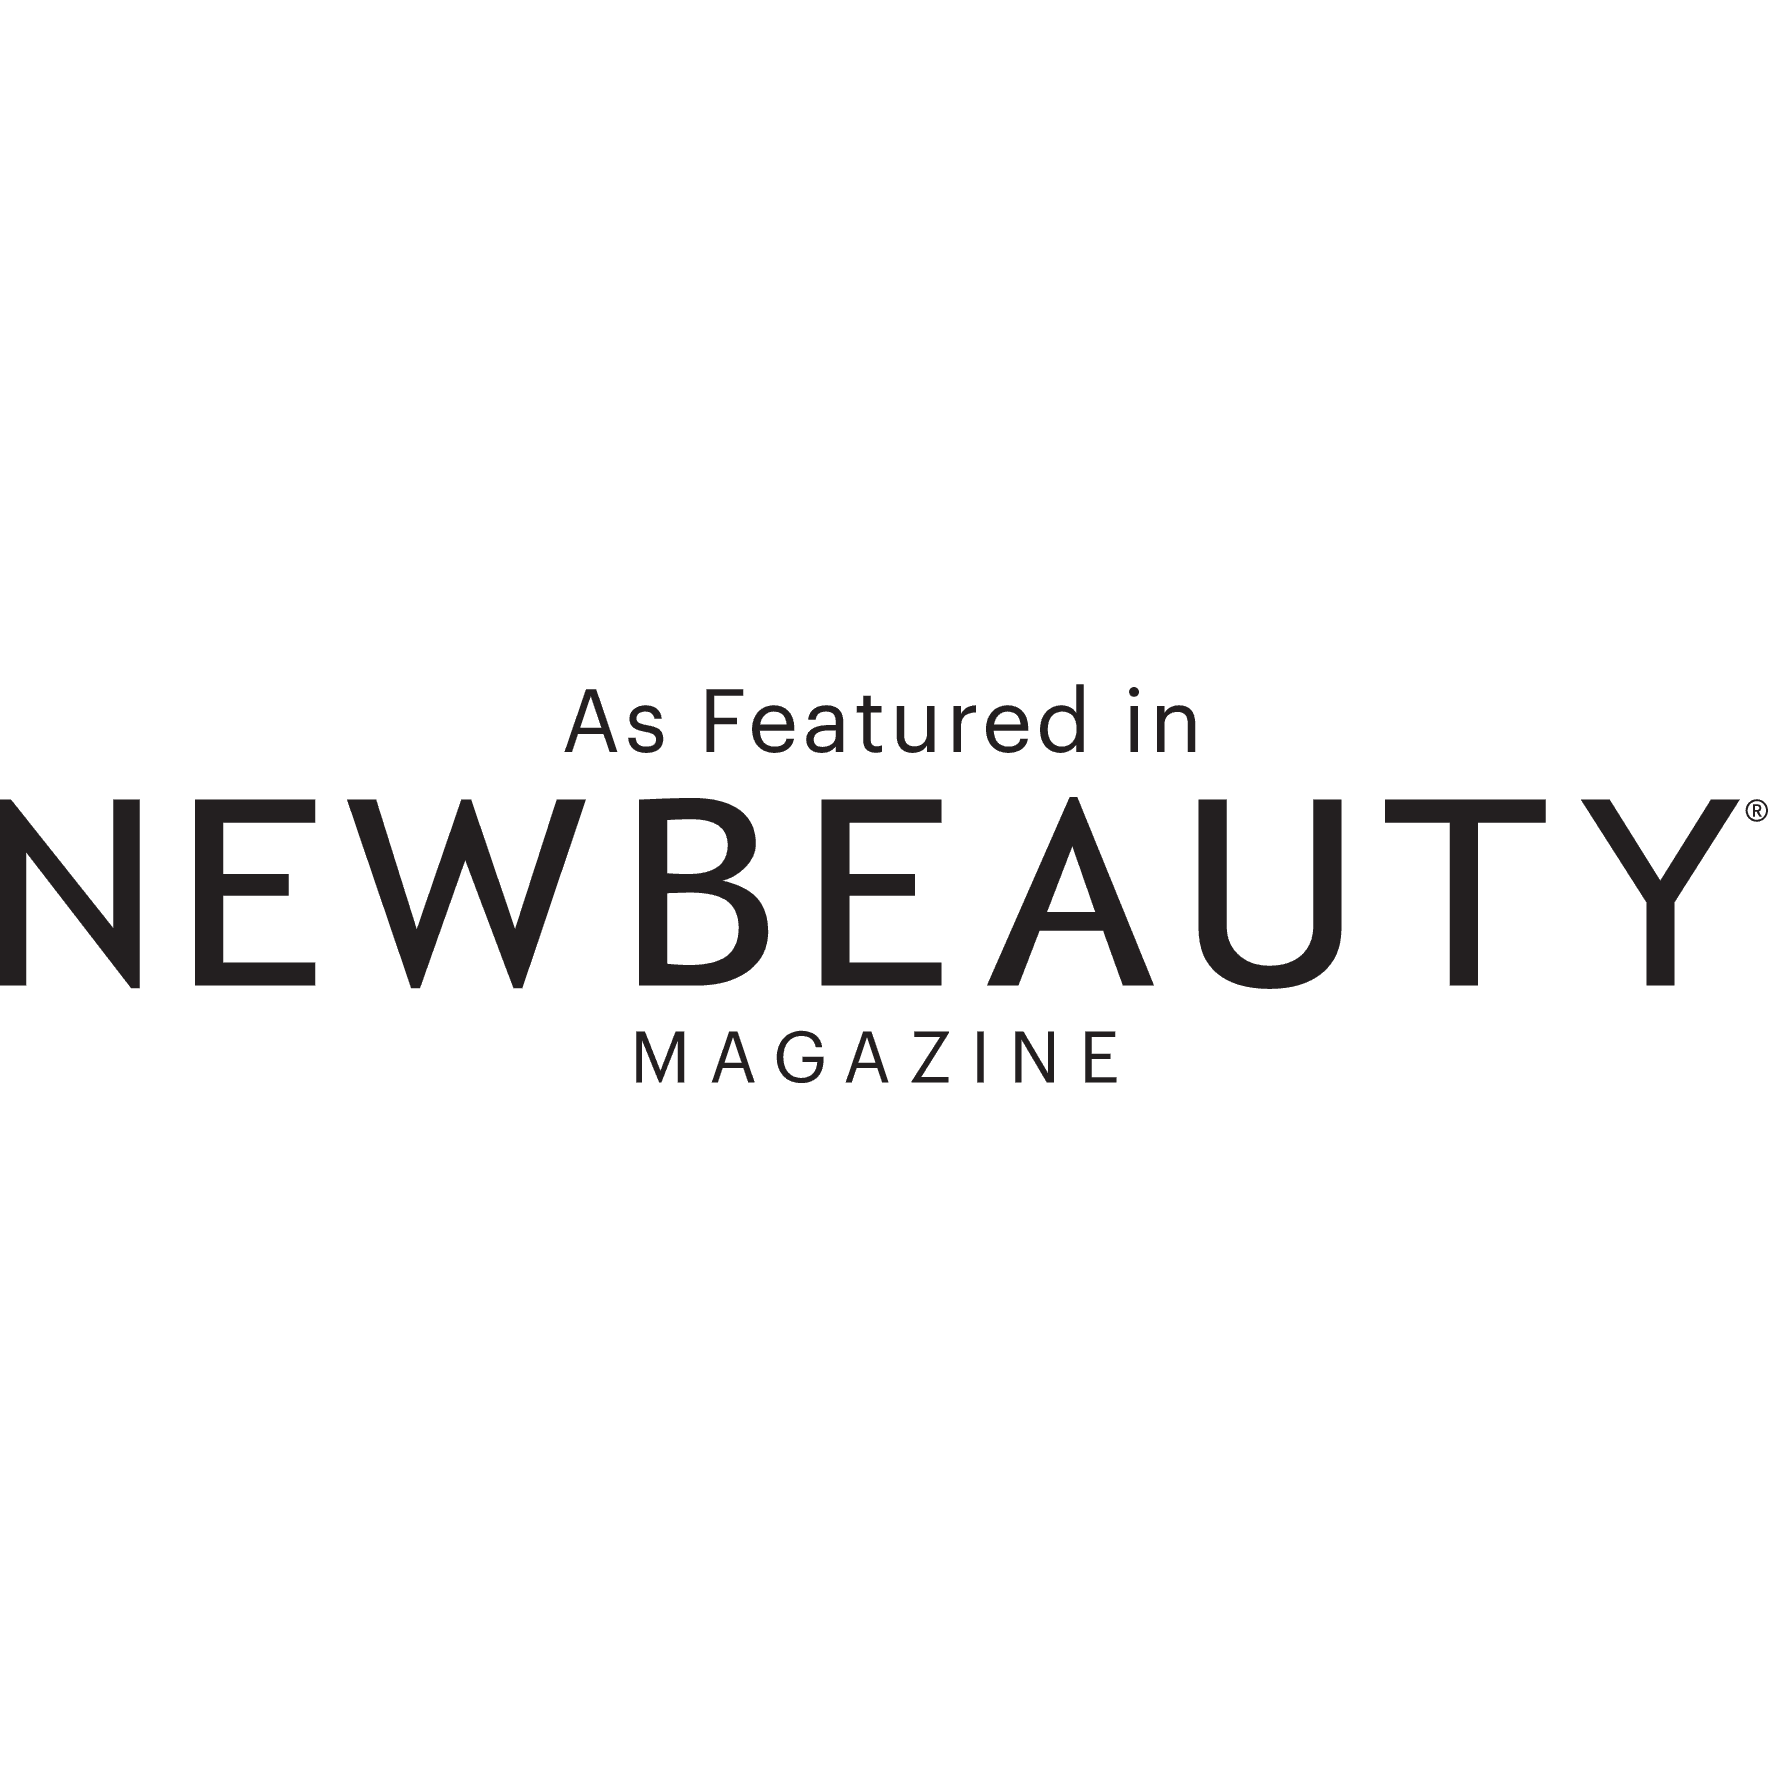 New Beauty Featured Logo